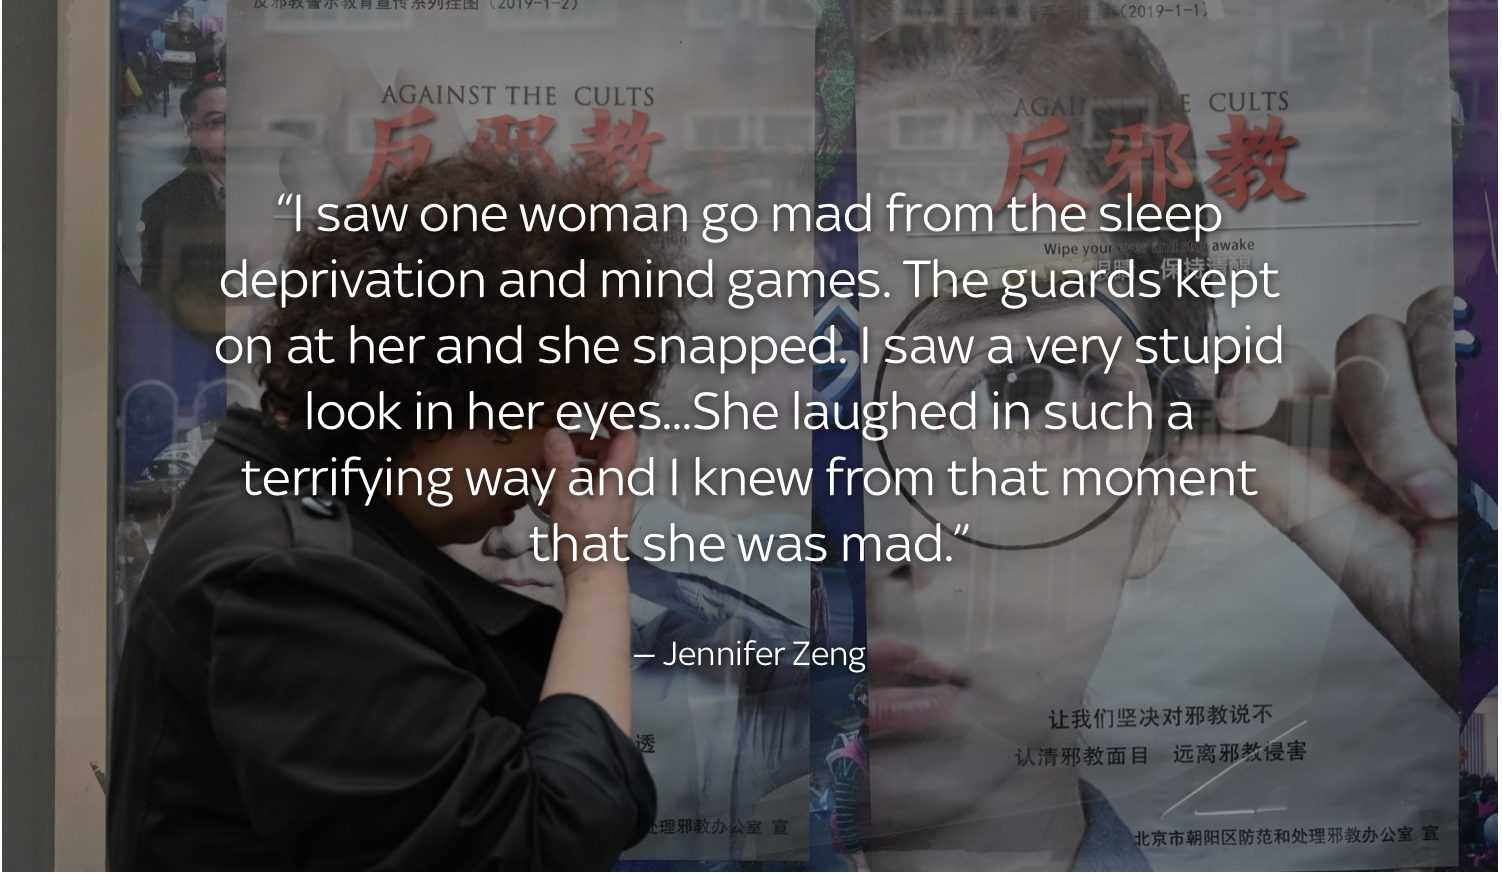 I saw one woman go mad from the sleep deprivation and mind games. The guards kept on at her and she snapped. I saw a very stupid look in her eyes...She laughed in such a terrifying way and I knew from that moment that she was mad. Jennifer Zeng